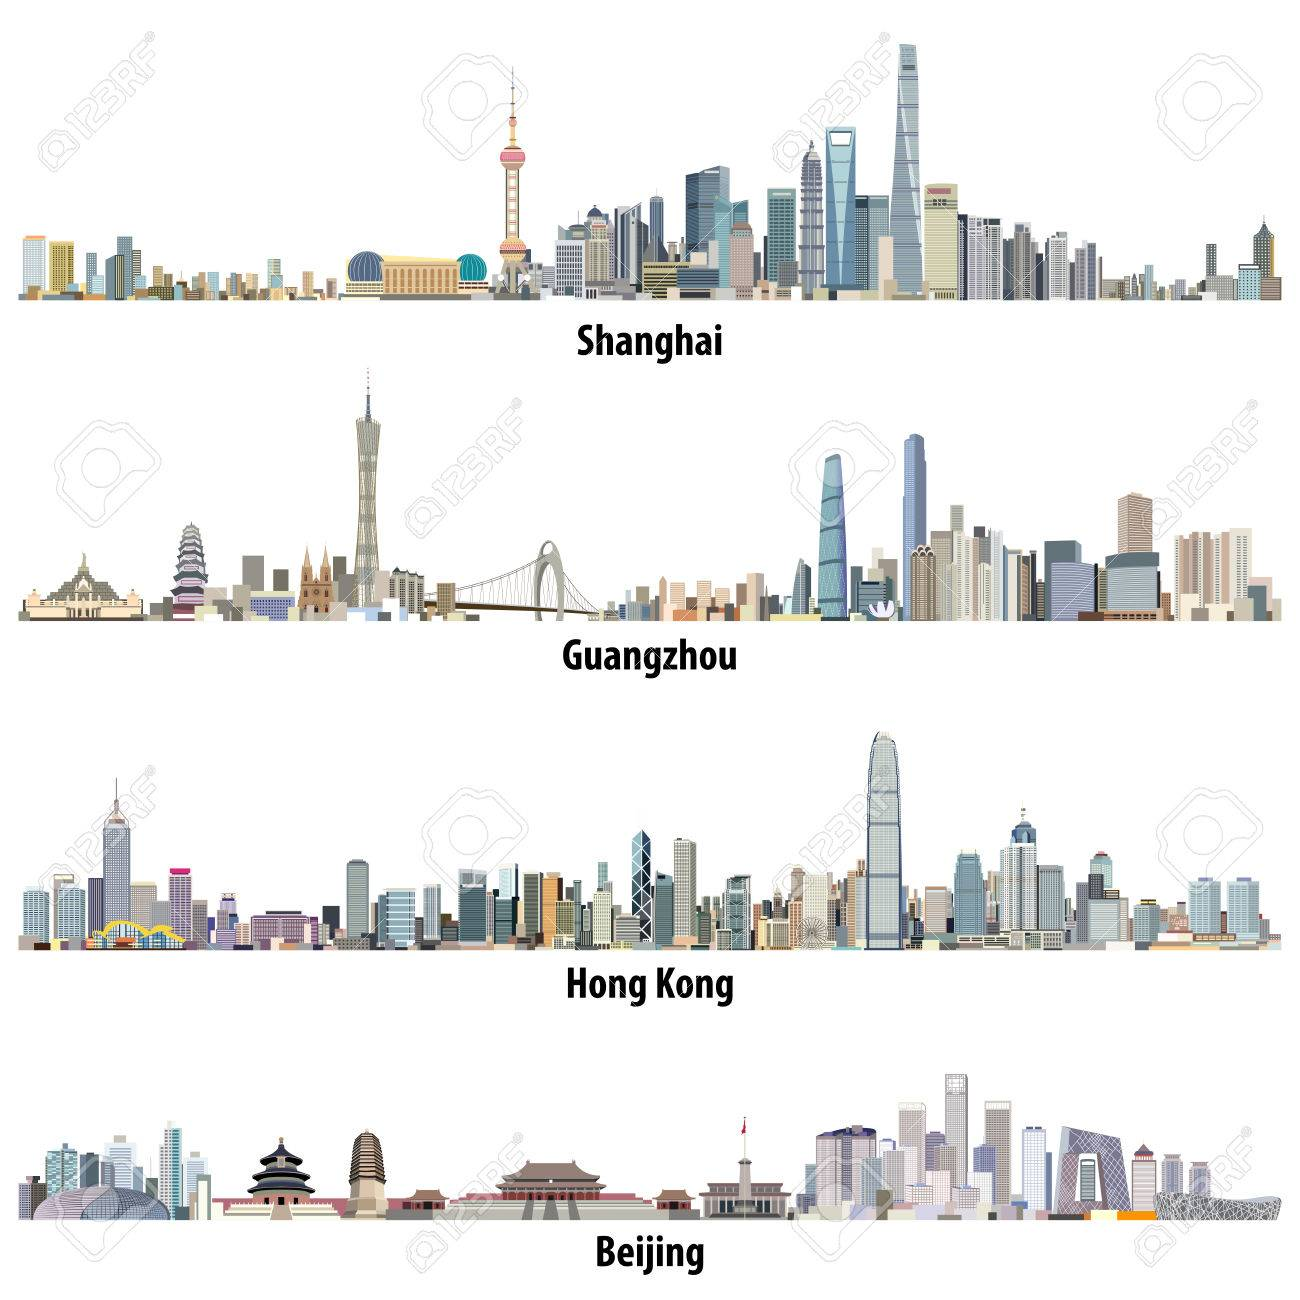 Abstract illustrations of Shanghai, Hong Kong, Guangzhou and Beijing skylines - 83883664